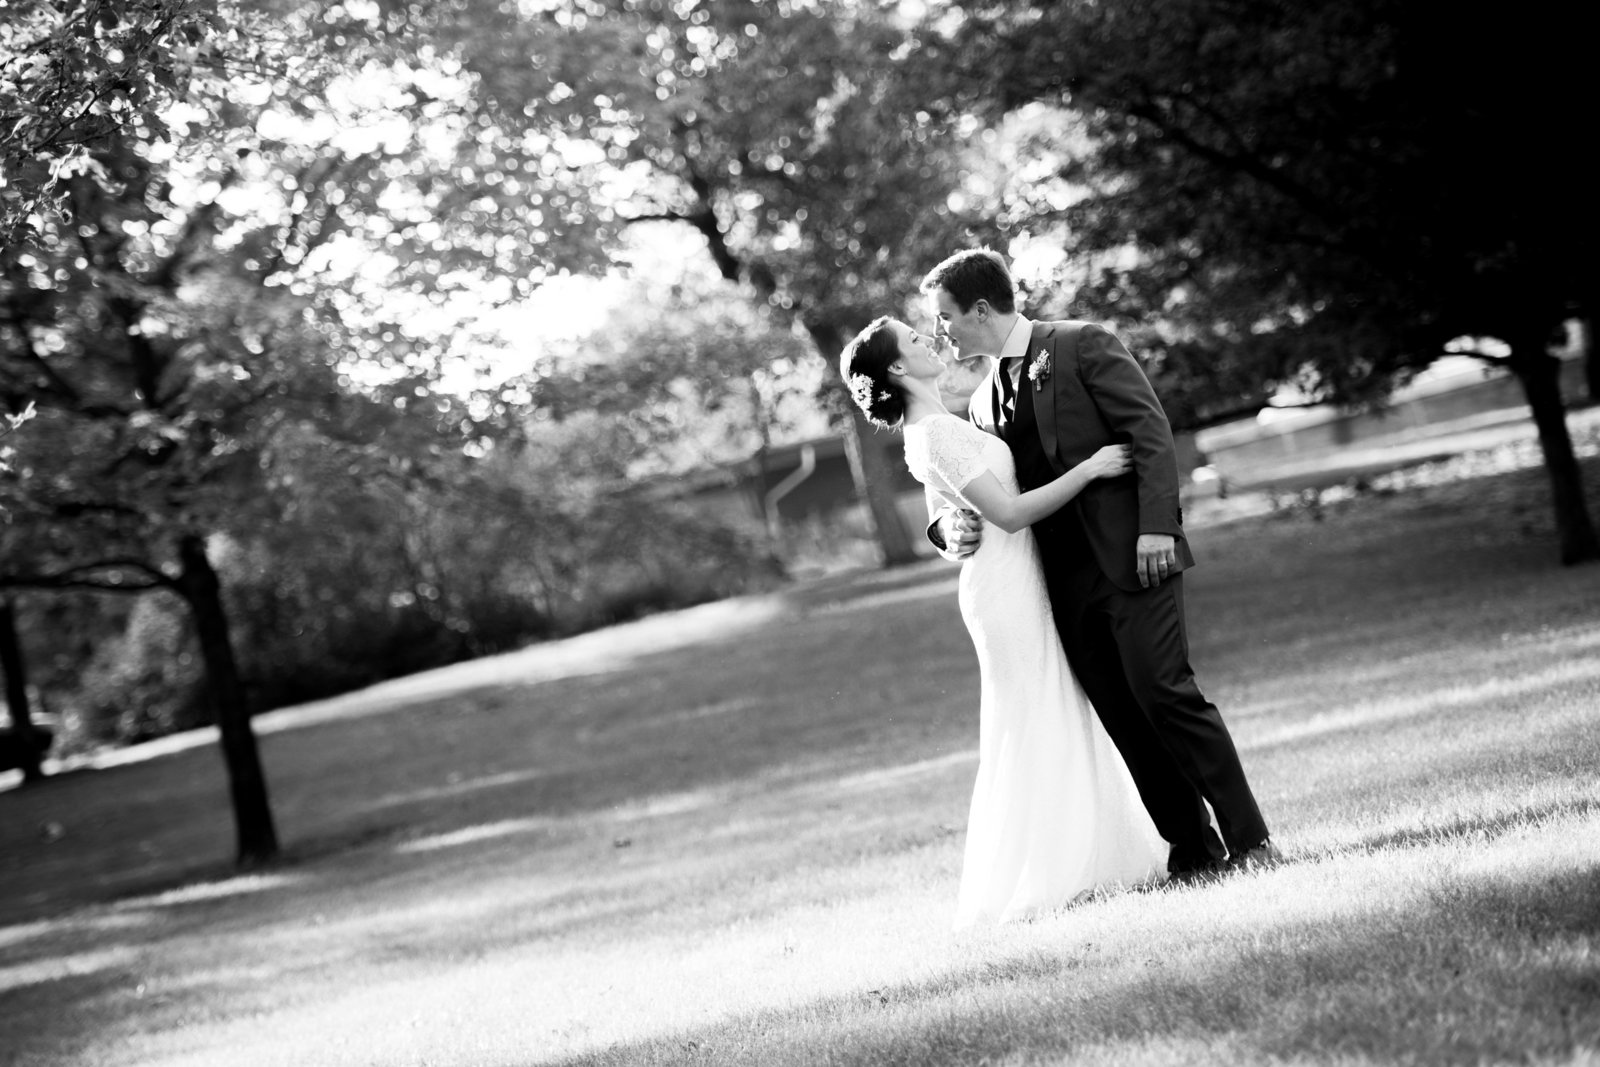 Chicago bride and groom kiss just minutes after ceremony.